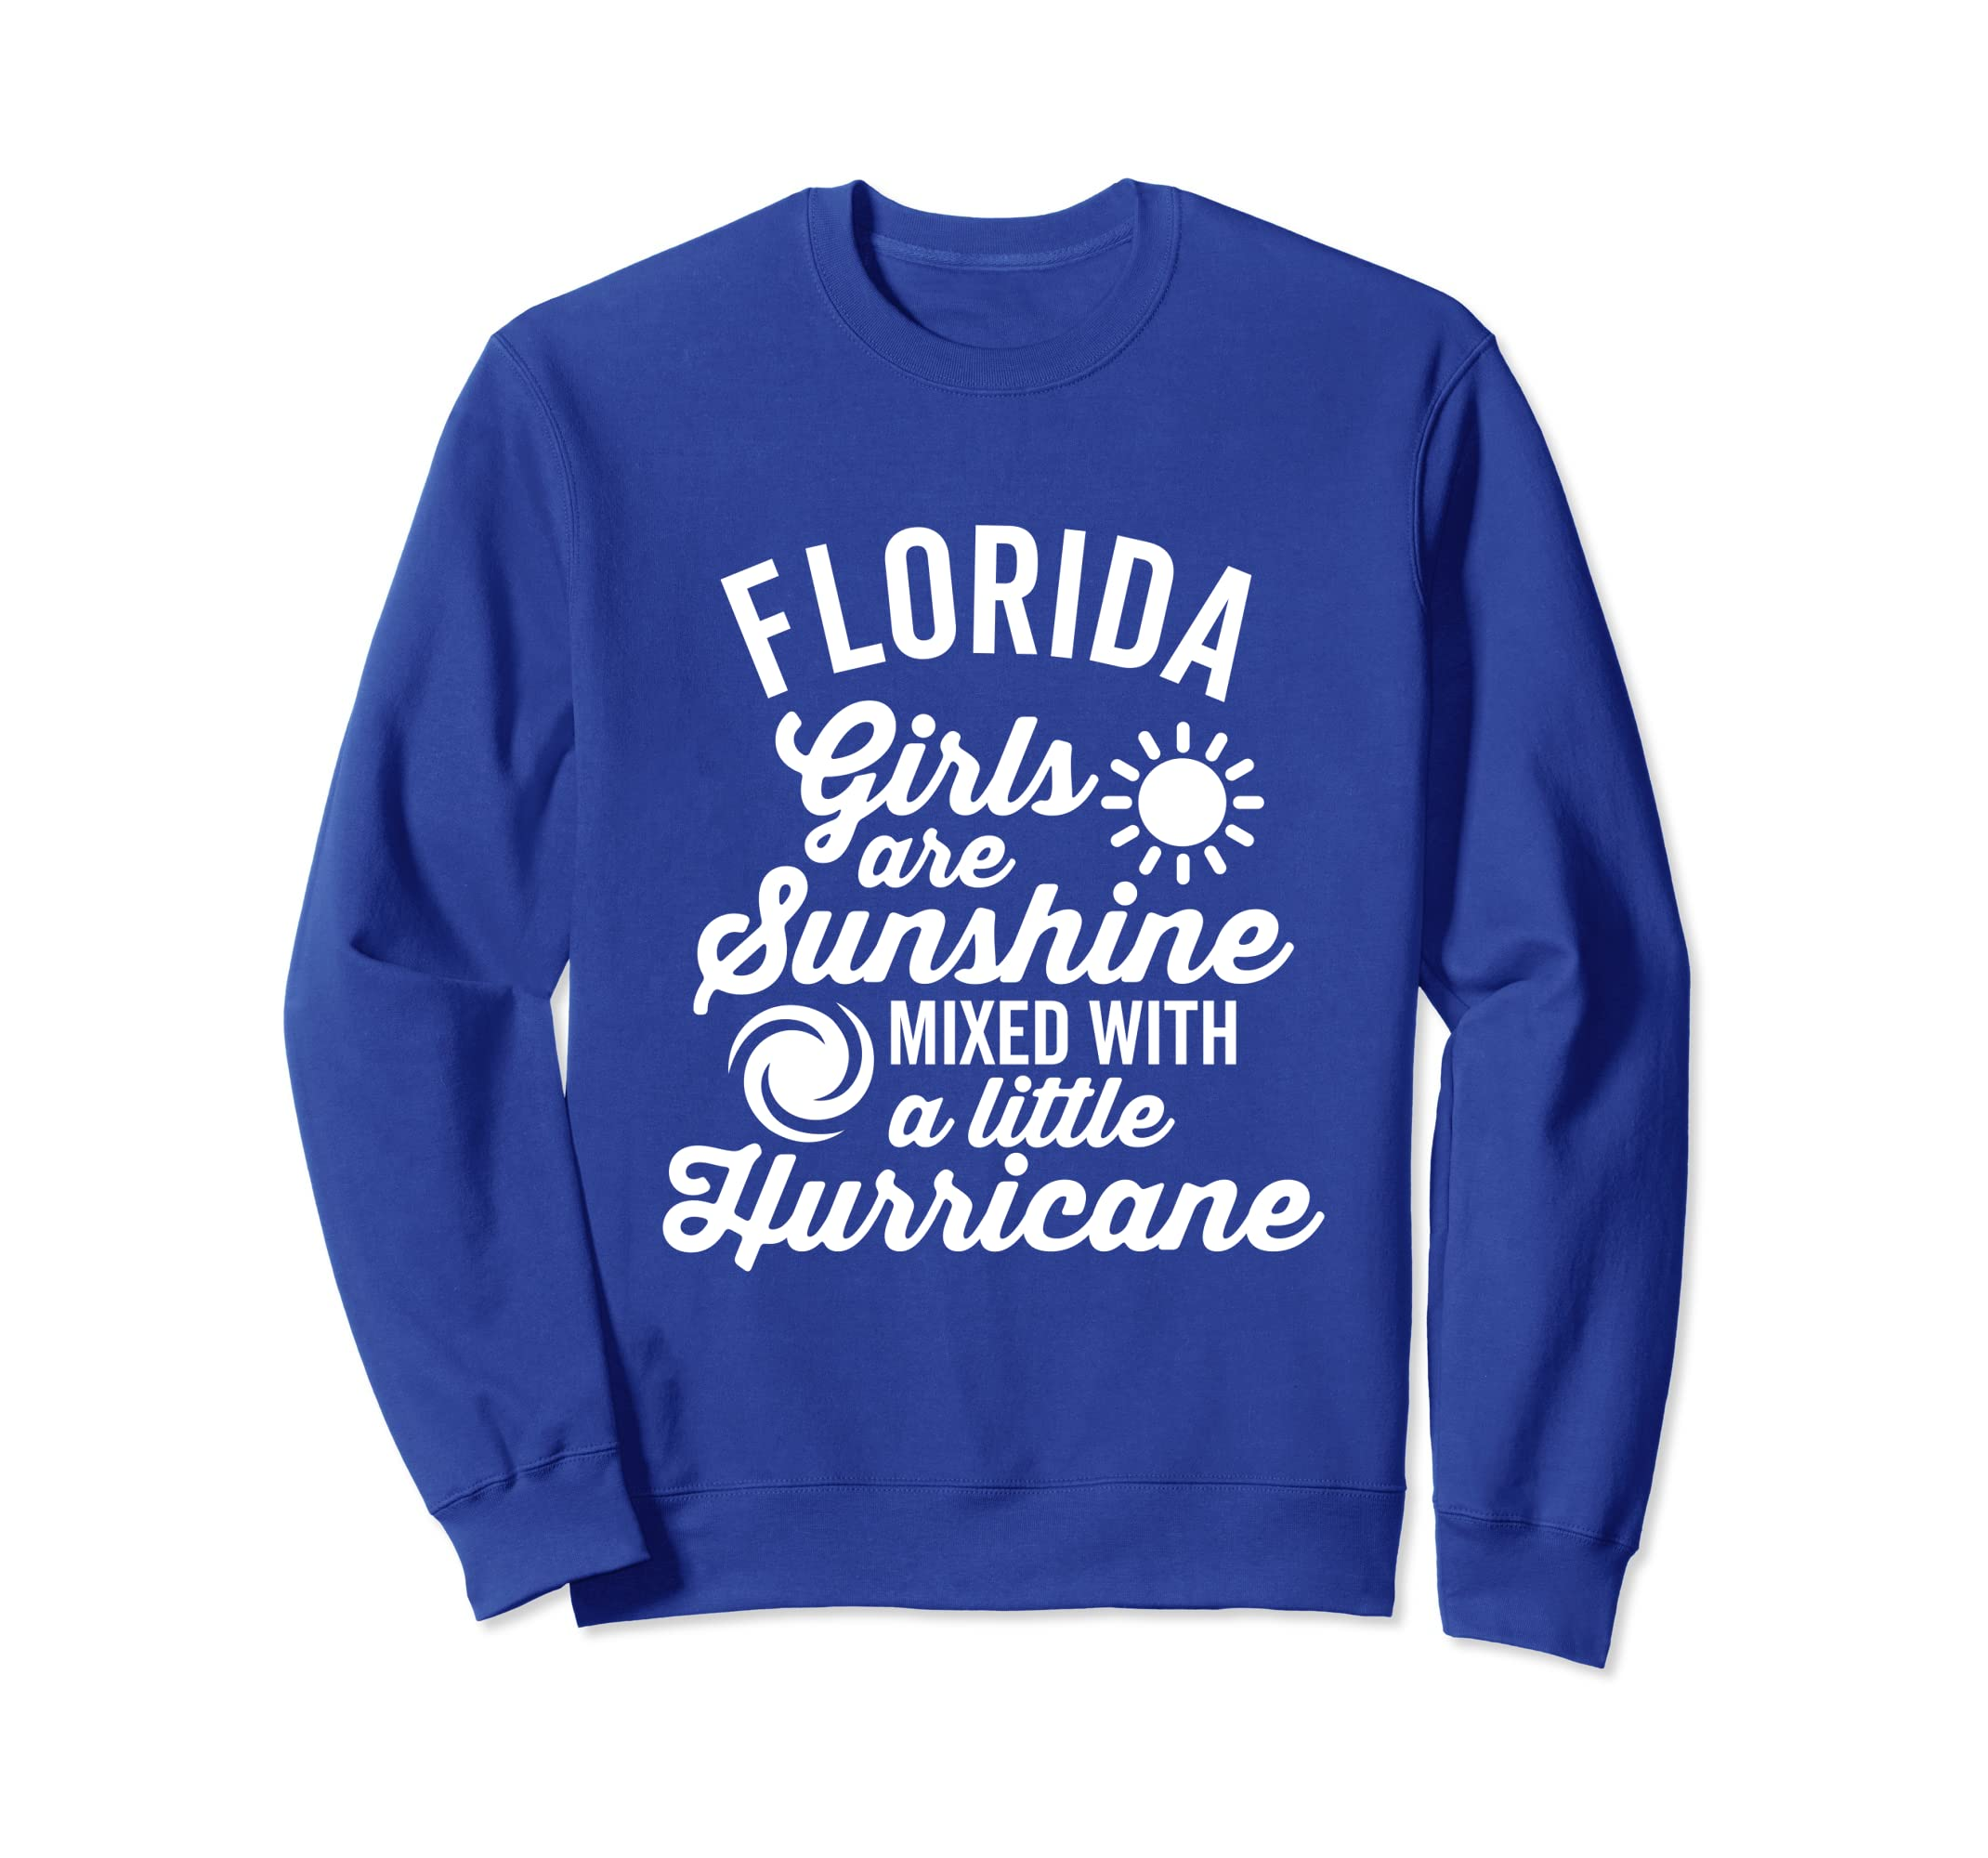 a2229abd1ea30 Amazon.com: Florida Girls Are Sunshine and a Hurricane Sweatshirt ...